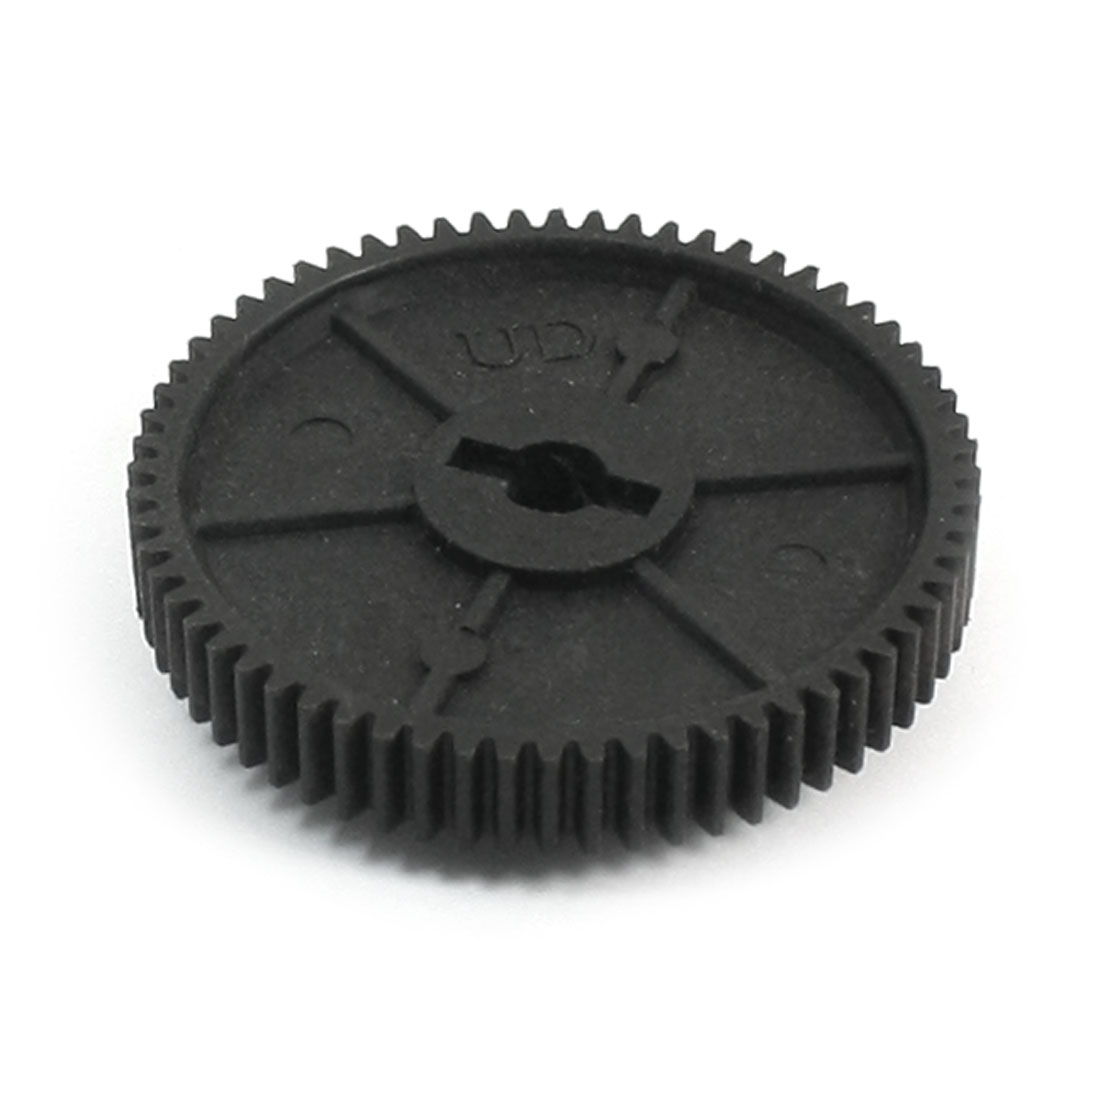 64T 5mm Hole Dia Black Plastic Spur Gear 11164 for 94111 RC 1/10 Car